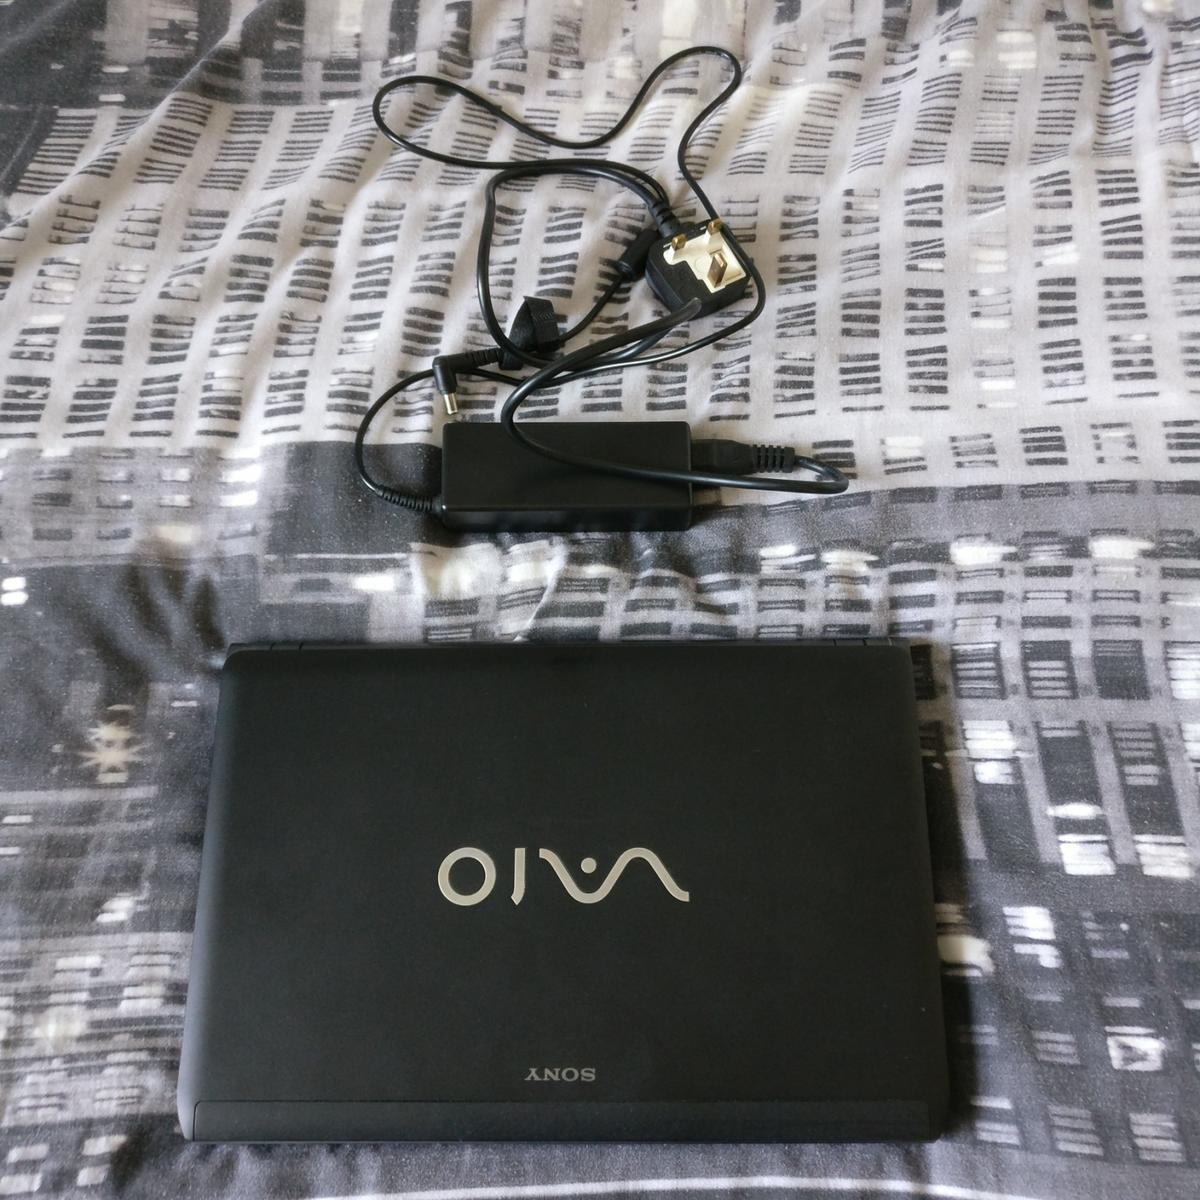 Sony Vaio S Series. 13.3 inch laptop. Good condition, fully working! Windows 10 pro on board. Intel Core I5 - 2.53ghz. 6GB of RAM. Various ports available. Very good device. Highly recommend. Real bargain!!!  If you have any questions, let me know :)